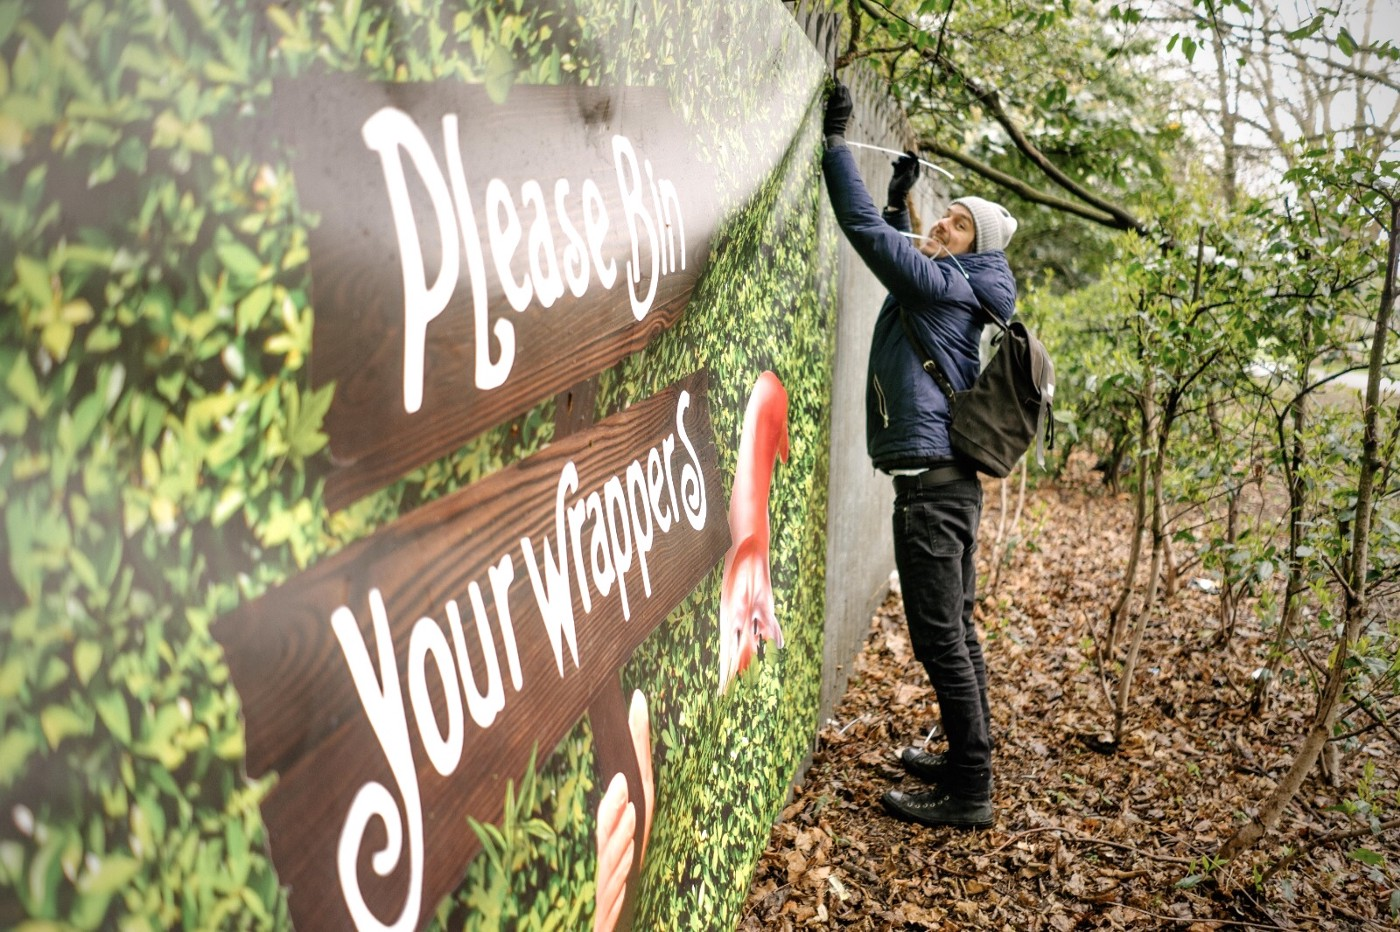 The image shows a tall fence covered by a banner in a wooded area. The banner has a green leafy background, a sign reading 'Please bin your wrappers' and a gnome's head pokes out from the foliage. Rob is standing at the end of the banner holding cable ties and grinning at the camera.